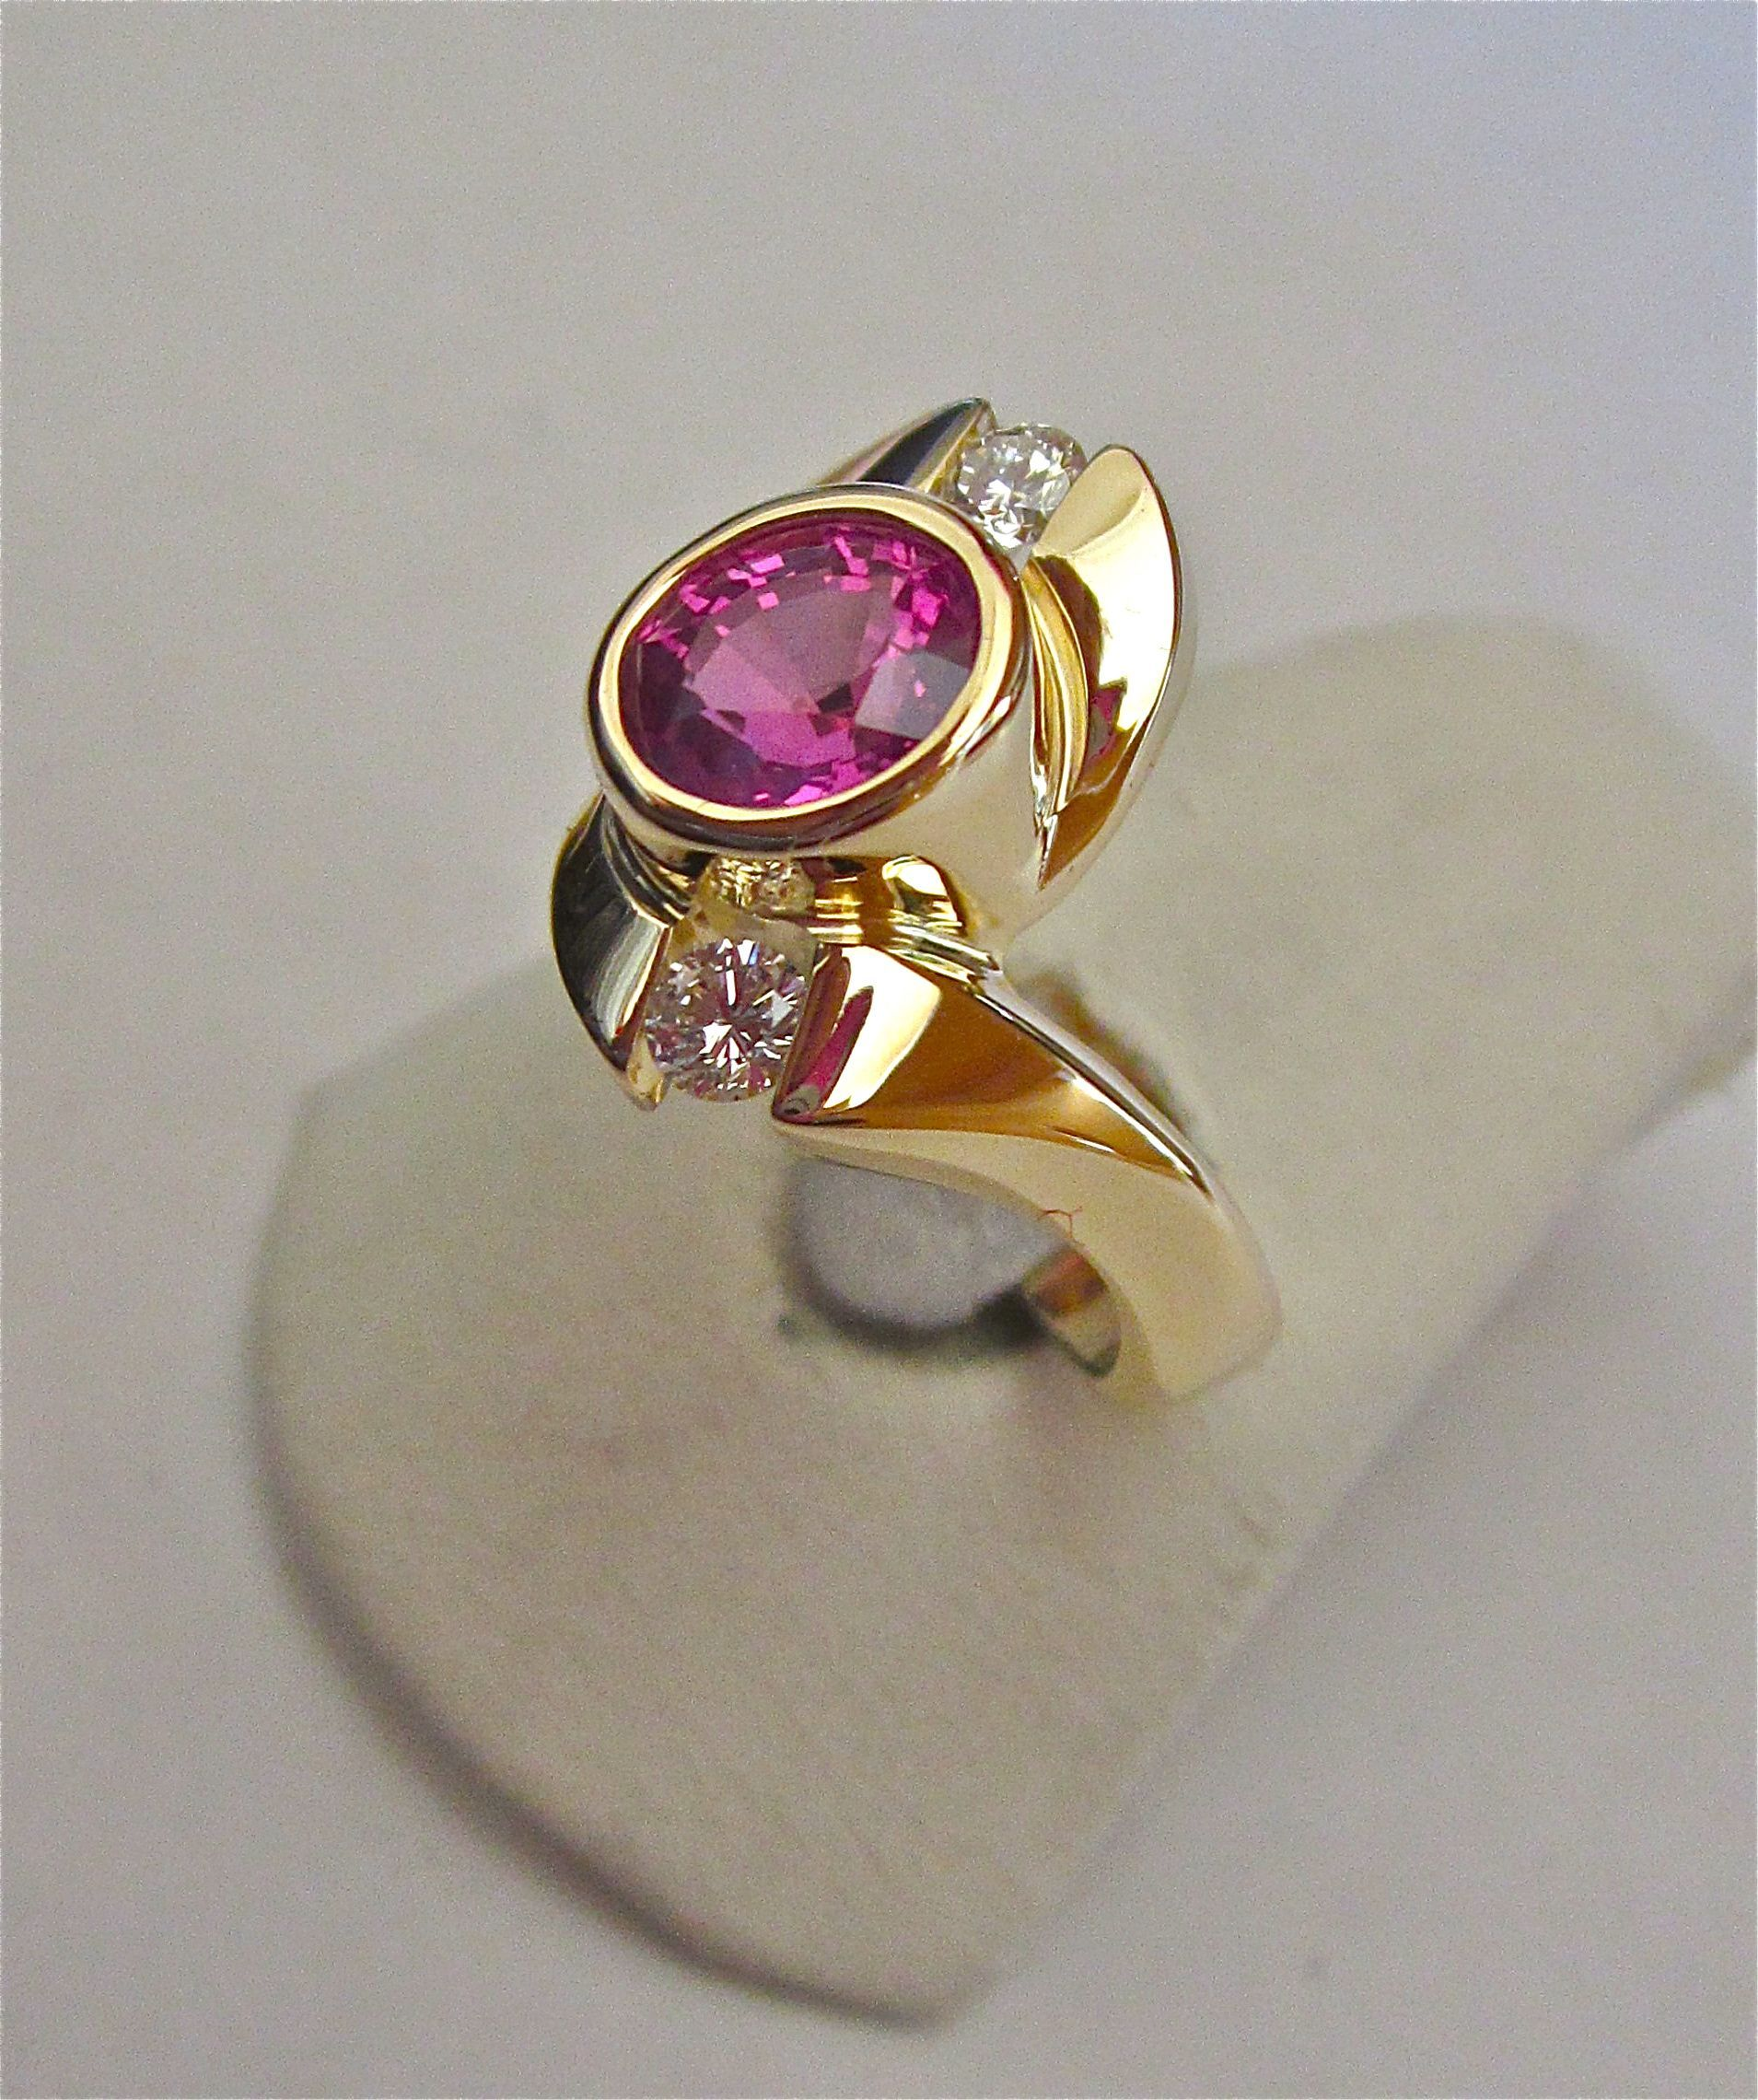 One of a kind Pink Sapphire and diamond ring in 14K gold